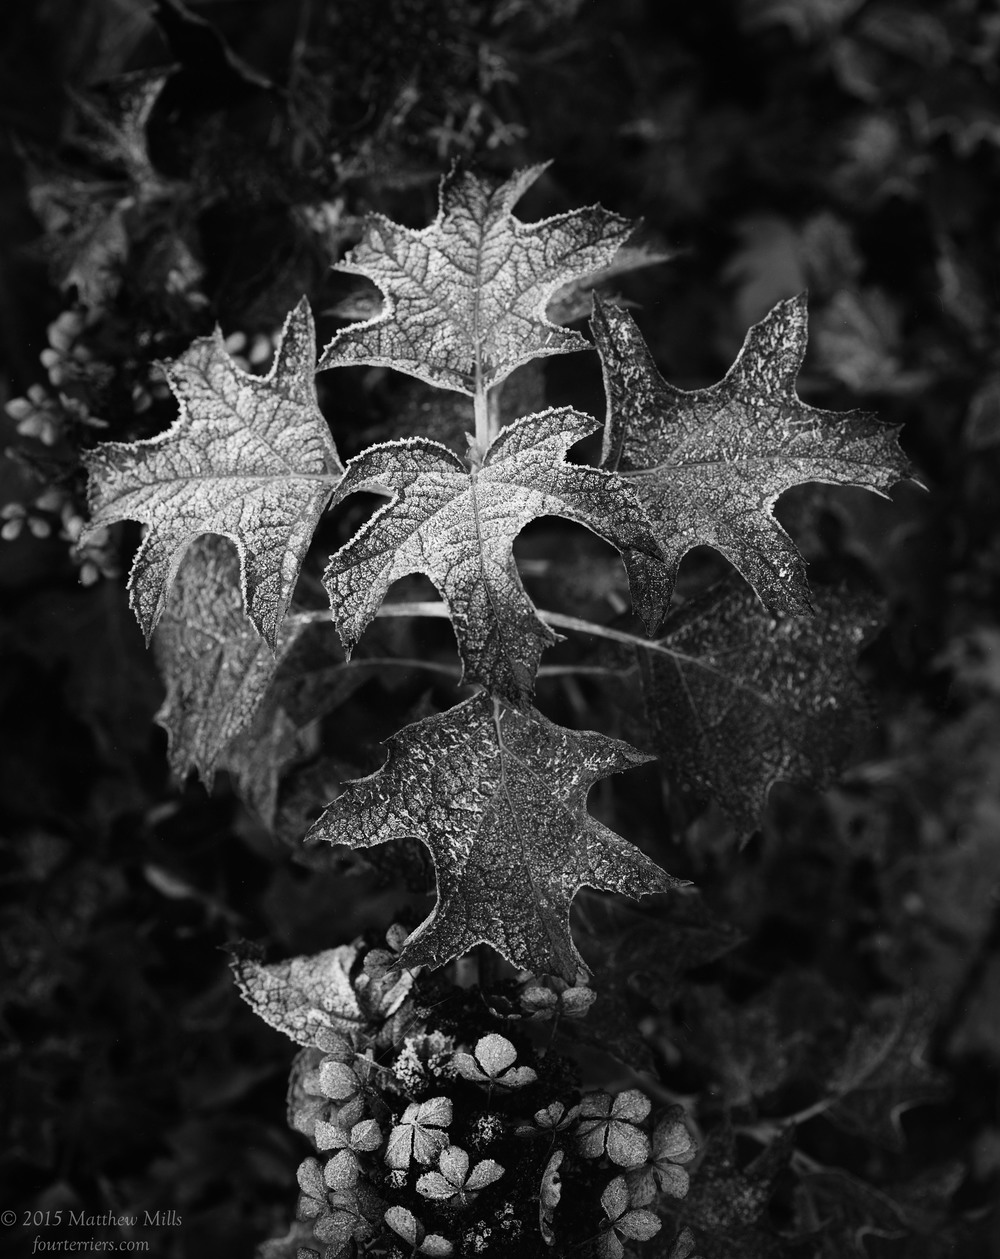 Oak Leaf Hydrangea in Frost, Fall 2015